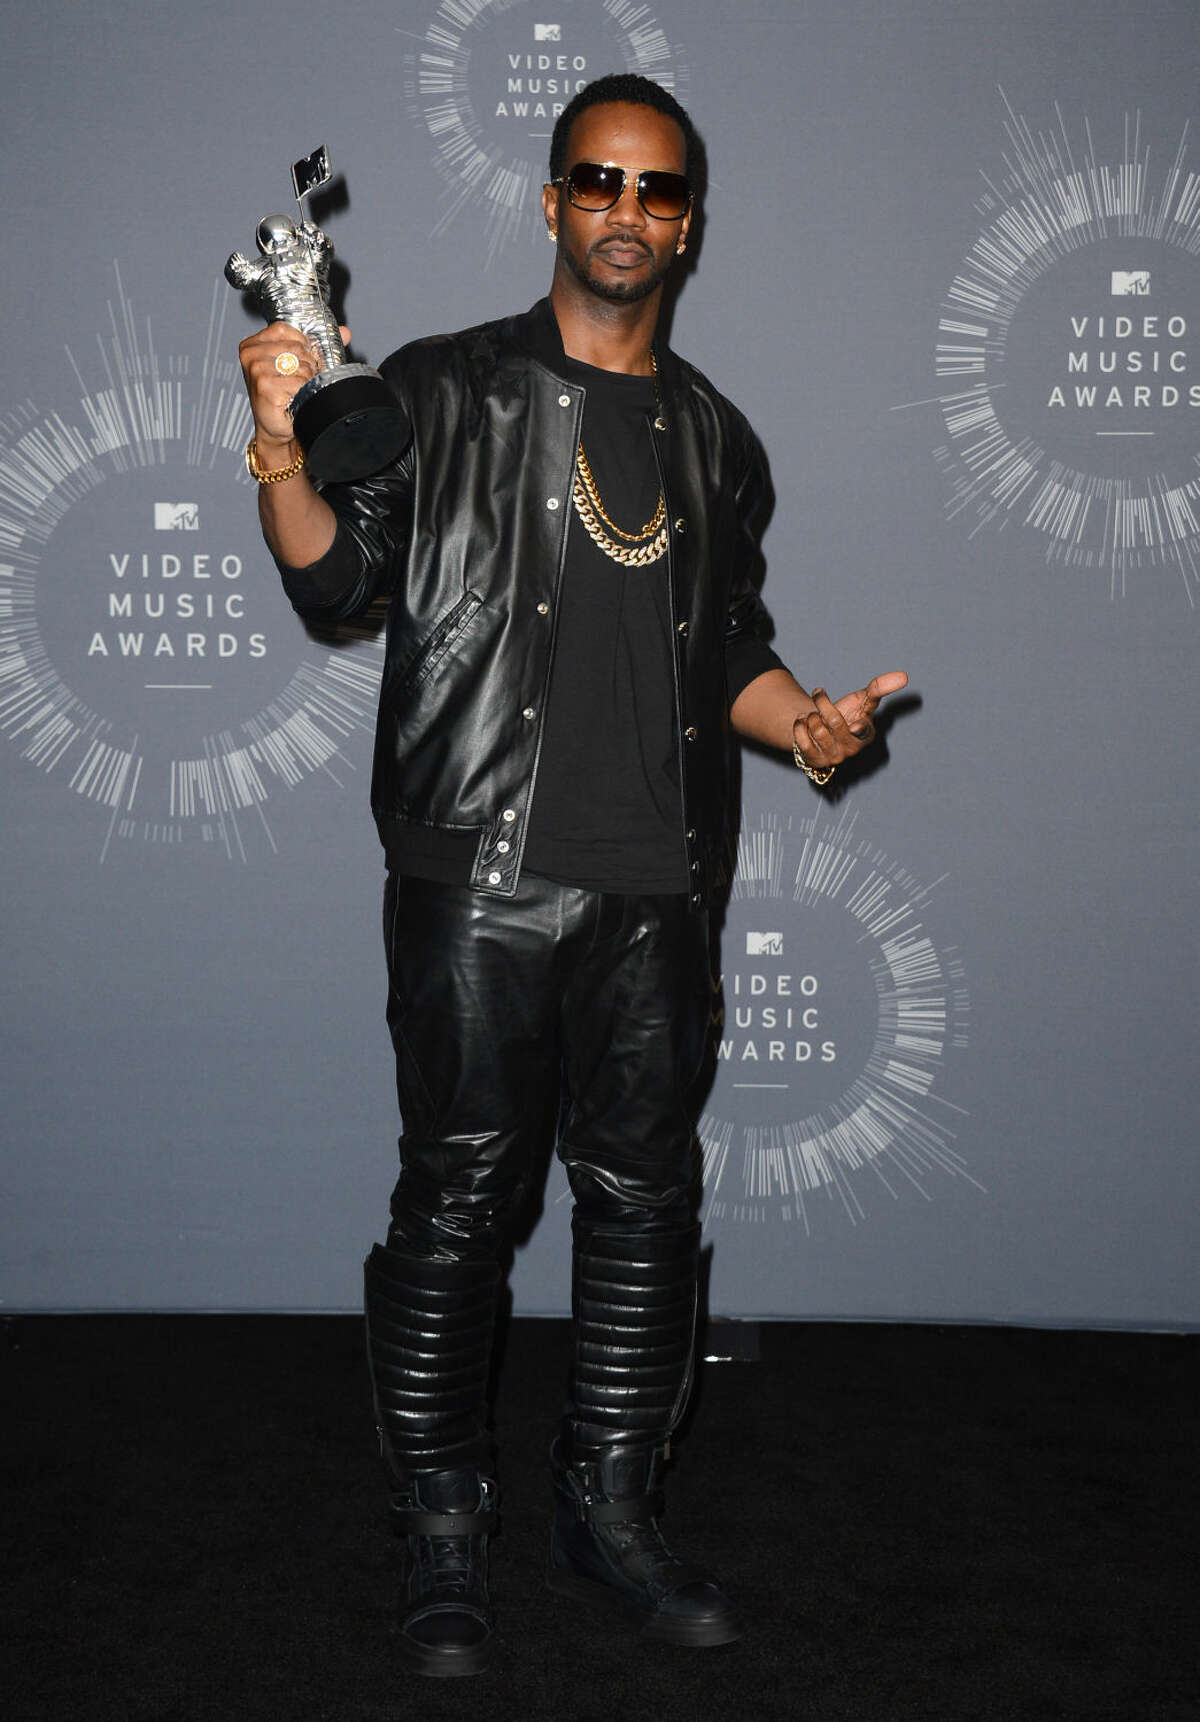 Juicy J, featured in Katy Perry's song